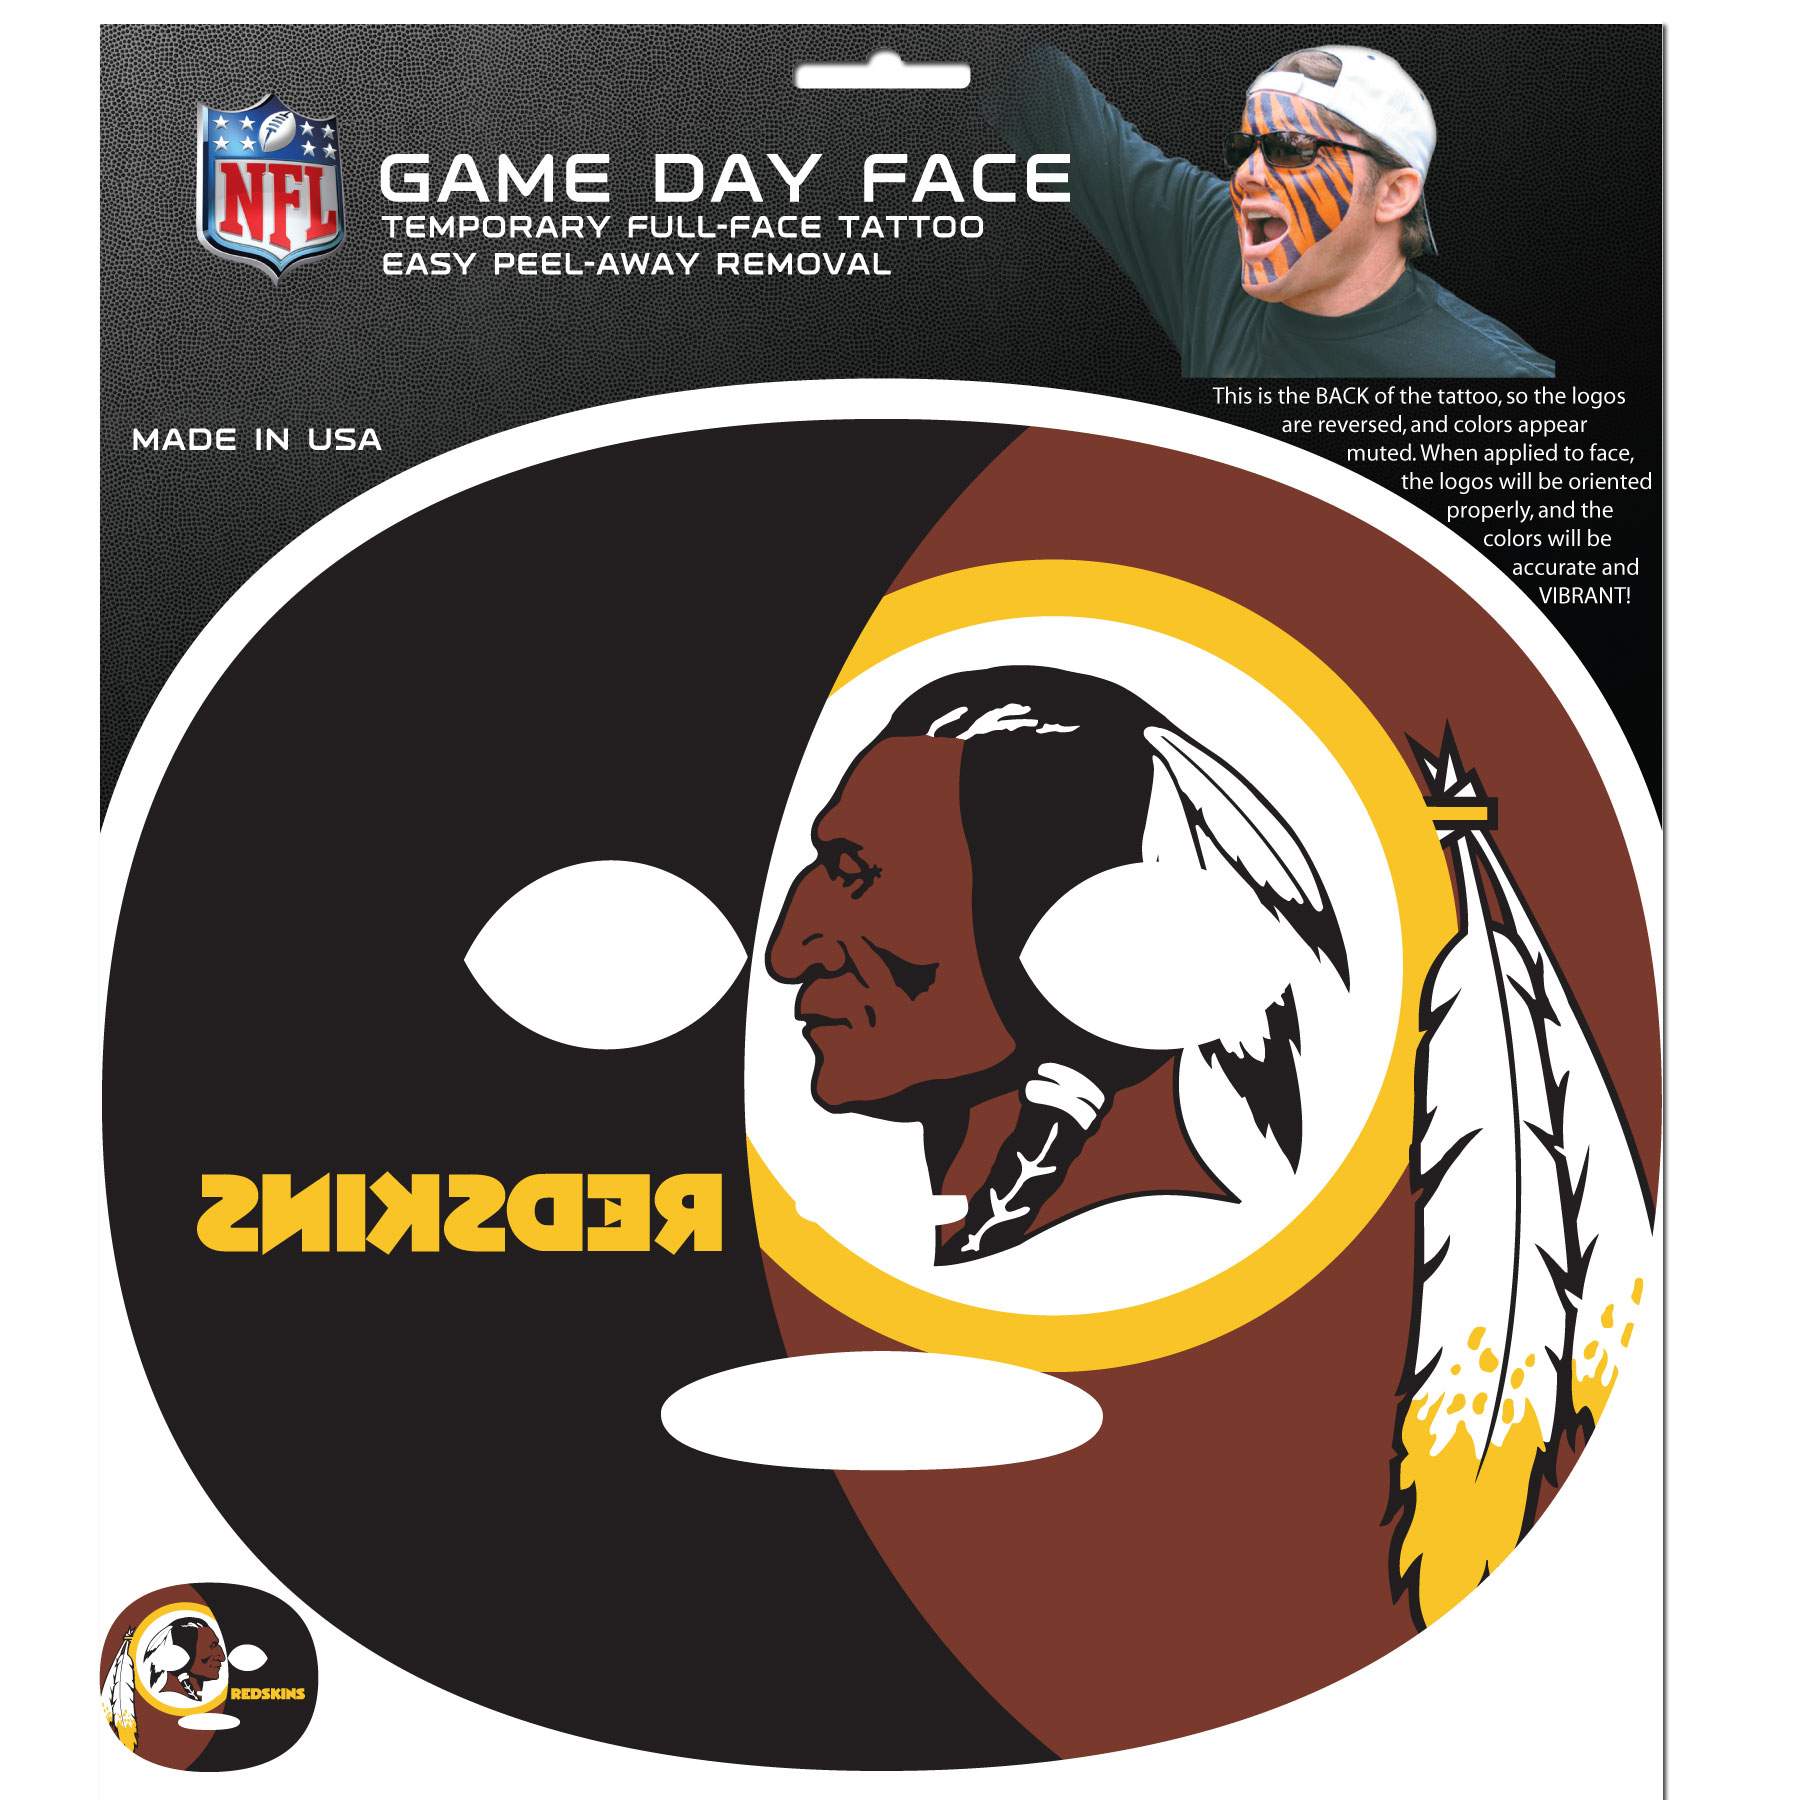 Washington Redskins Set of 8 Game Day Faces - No better way to show your team pride than by painting your face. Siskiyou's Game Day Face Temporary Tattoo isn't your typical face paint. It is a water based application that doesn't smudge, smear or sweat off while you're wearing it and easily peels off after you're done celebrating your team's big Win! The temporary tattoo is large enough to trim down to fit your face. Our Game Day Face Temporary Tattoo's are fun for fans of all ages. You may have seen our product before, these are the same Temporary Face Tattoos as pitched on ABC's Shark Tank.